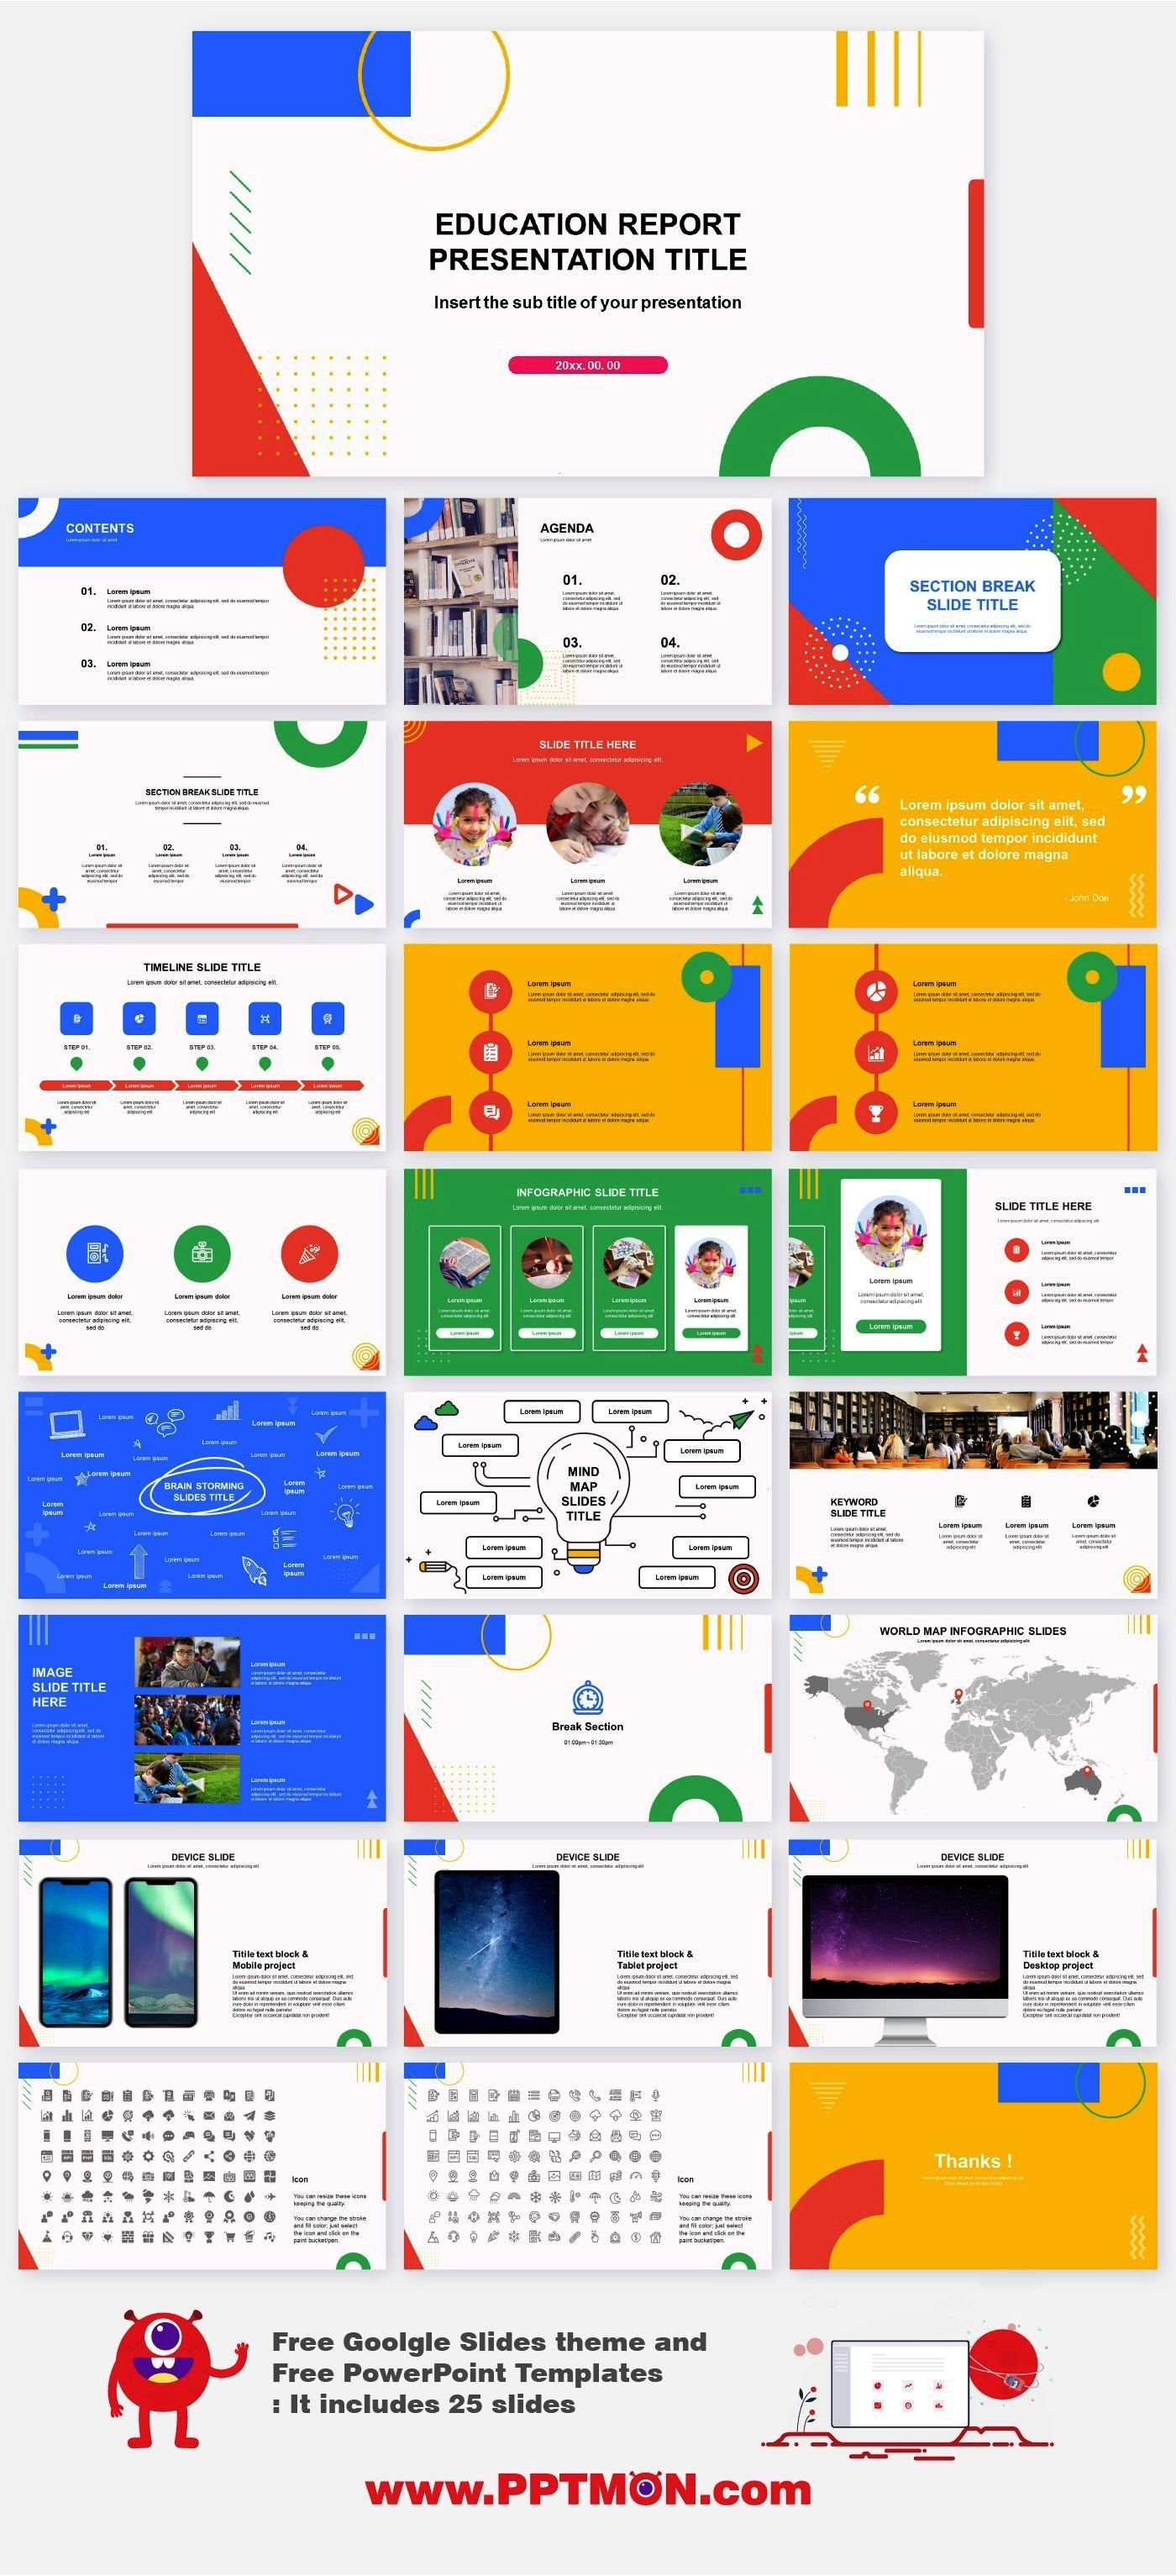 Education Free PowerPoint and Google slides templates Features 25 Best PowerPoint templates and Google sldies theme Easy and fully editable in powerpoint  Google slides 2...